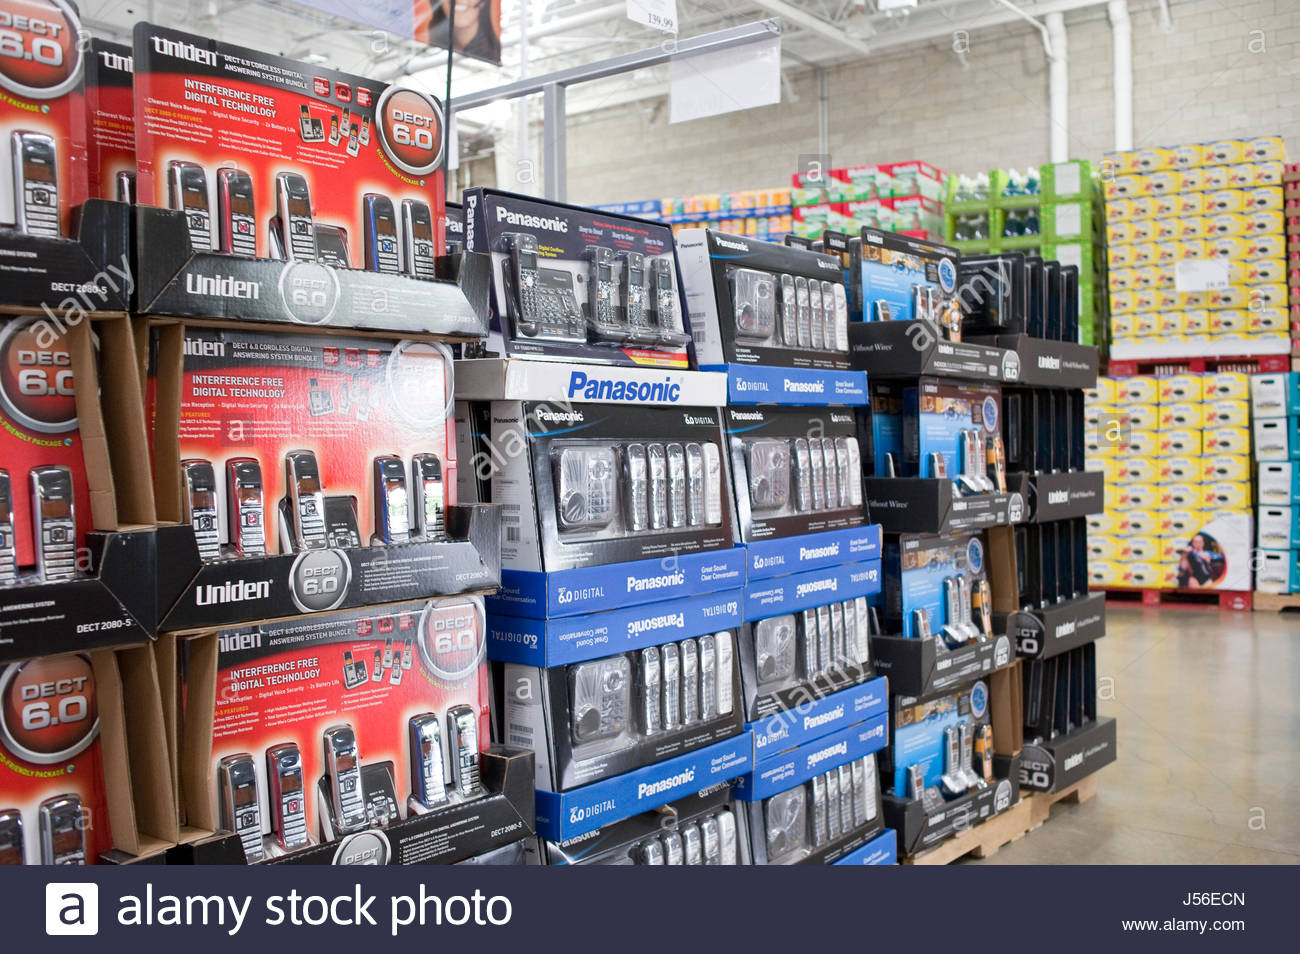 Consumer Electronics On Display At Costco Warehouse Costco